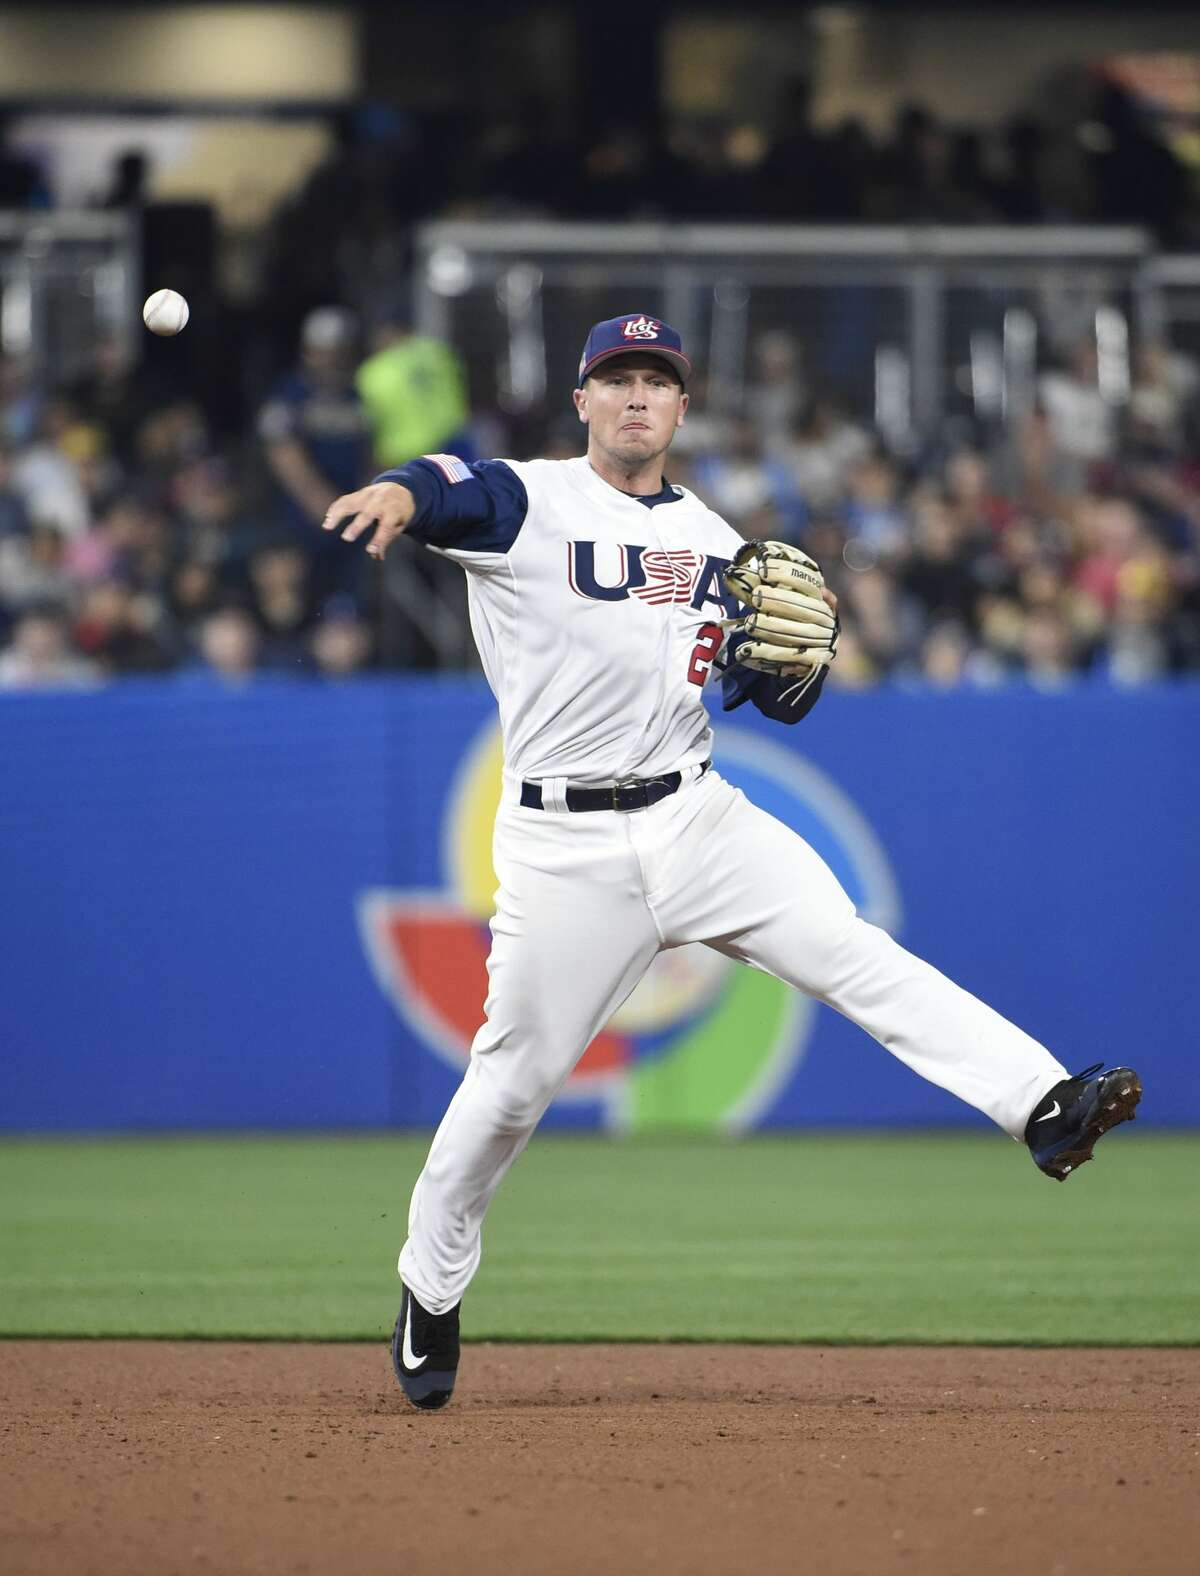 SAN DIEGO, CA - MARCH 15: Alex Bregman #2 of the United States throws out Martin Prado #14 of Venezuela during the sixth inning of the World Baseball Classic Pool F Game Two between Venezuela and the United States at PETCO Park on March 15, 2017 in San Diego, California. (Photo by Denis Poroy/Getty Images)